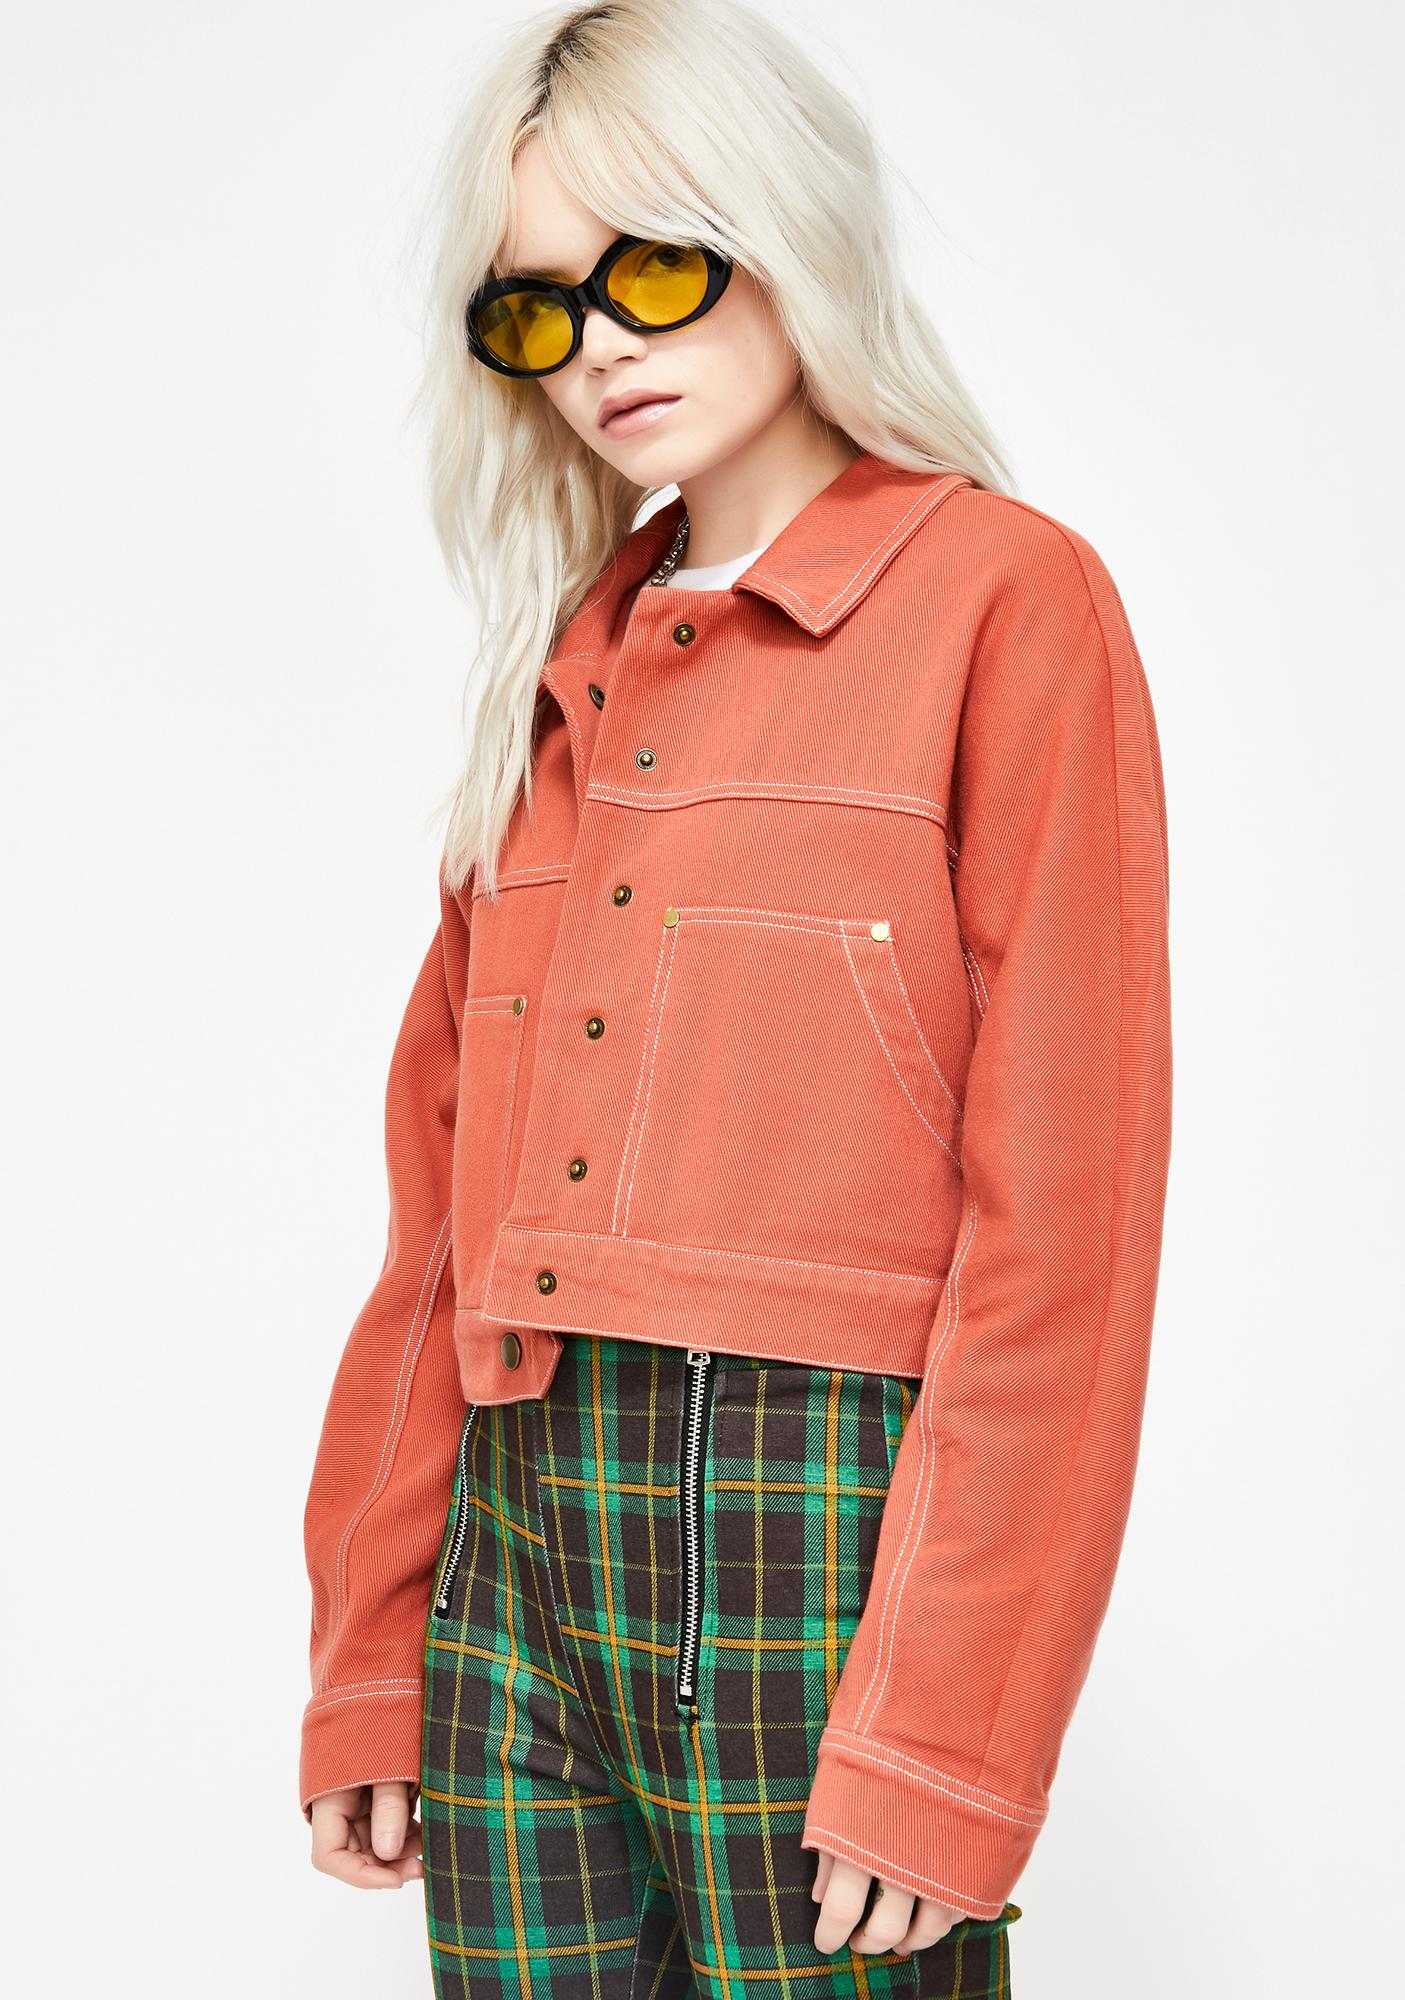 Sikk Situation Cropped Jacket